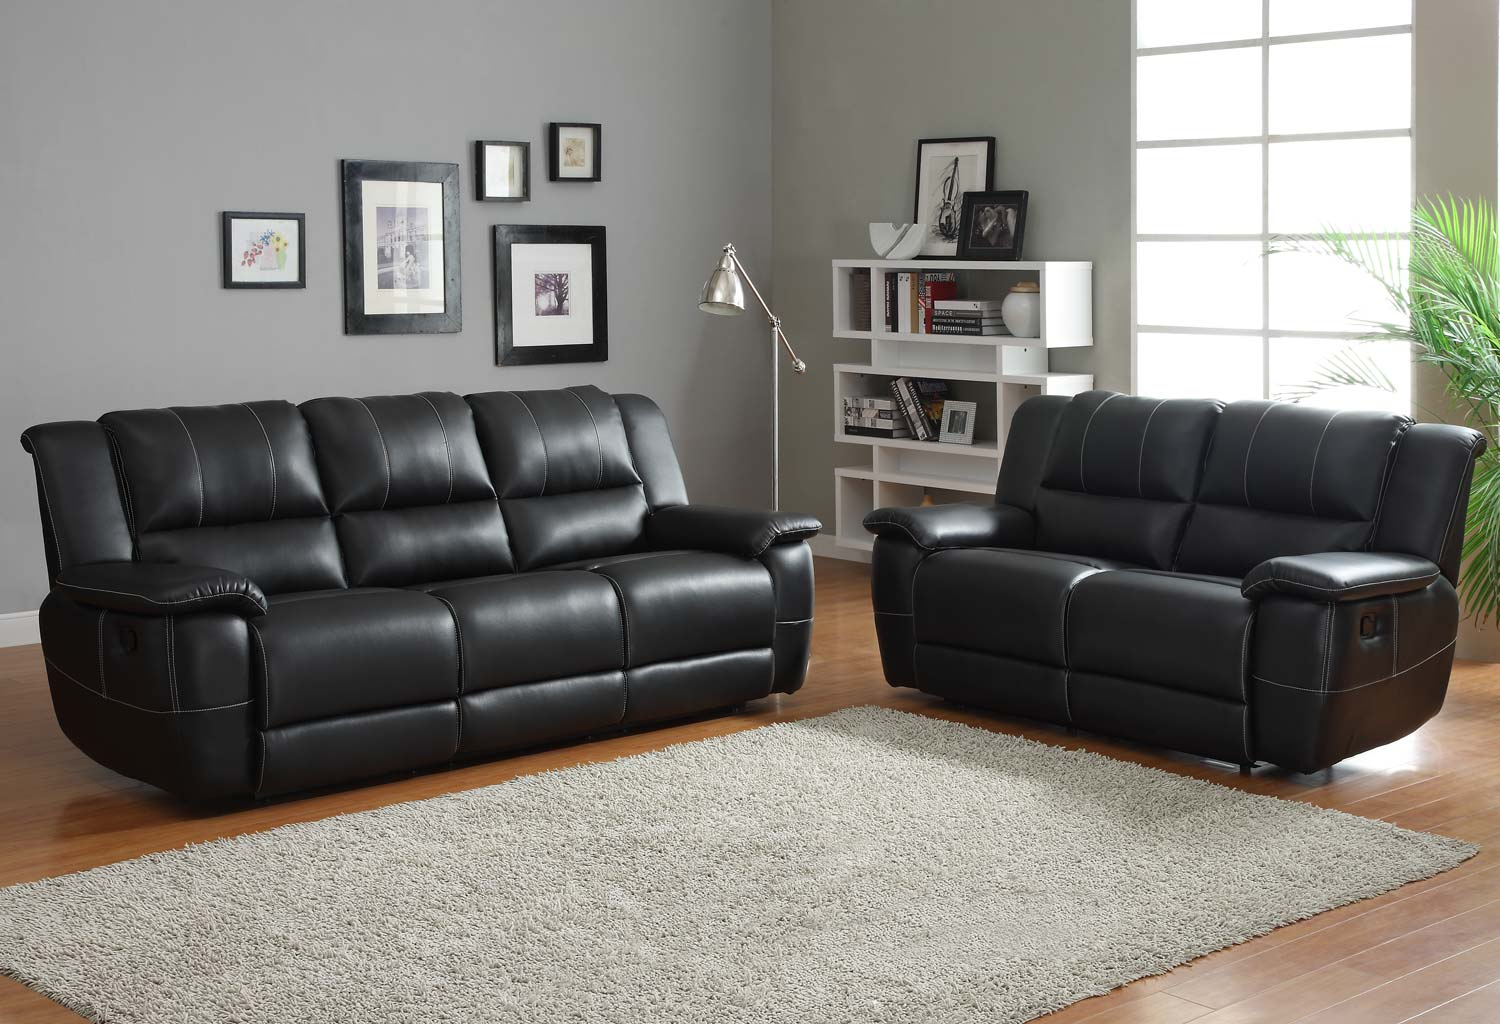 Homelegance Cantrell Reclining Sofa Set Black Bonded Leather Match U9778blk 3 At